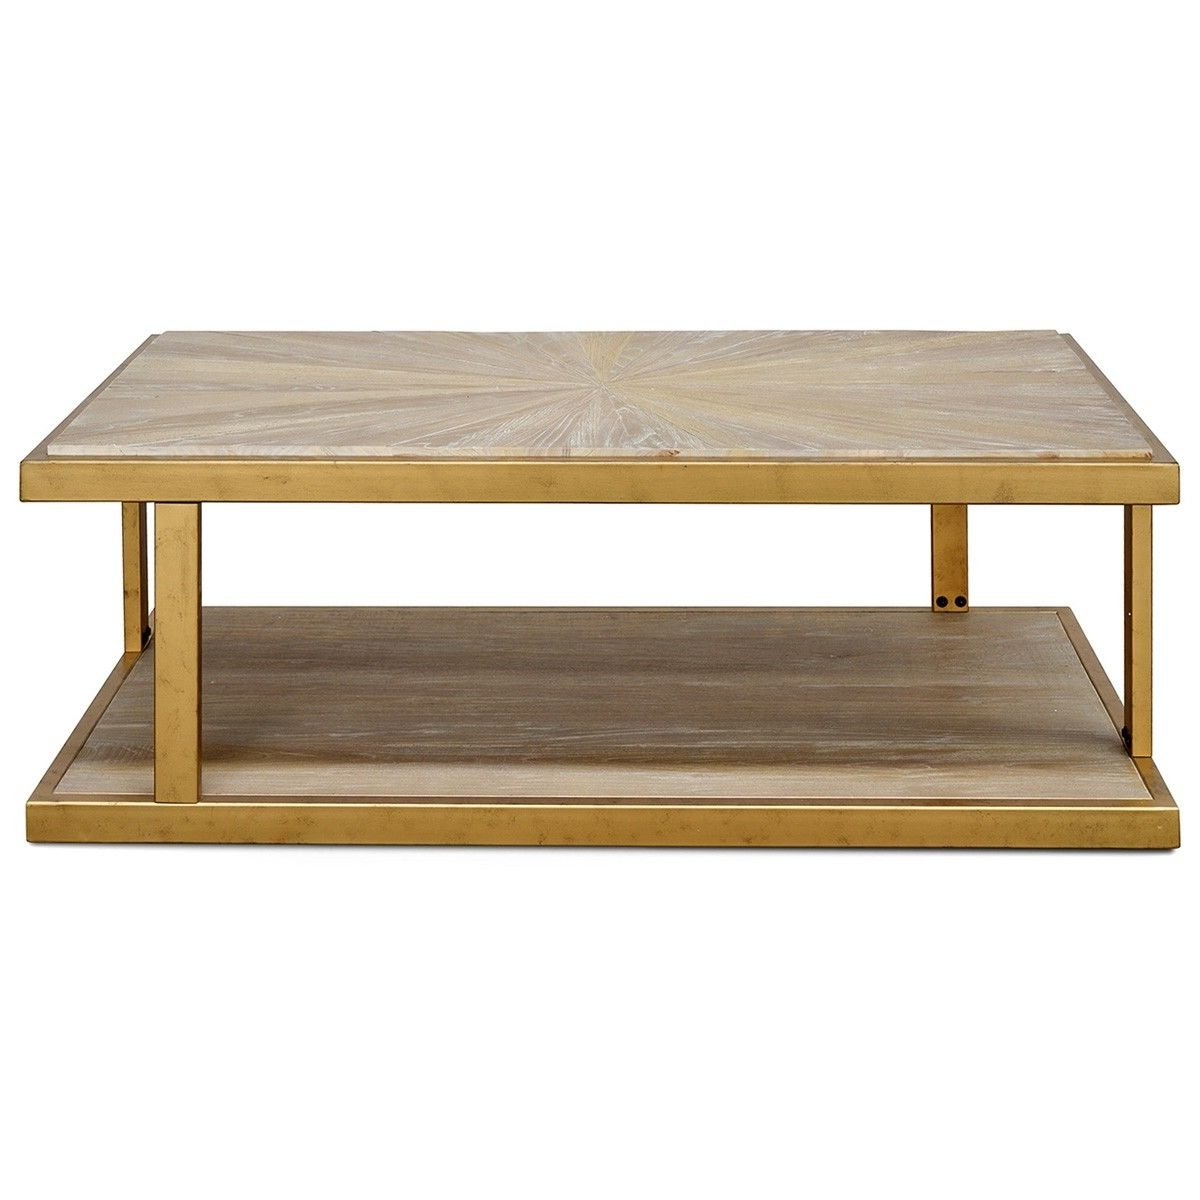 Melina Reclaimed Elm Timber & Iron Coffee Table, 130Cm Regarding Well Known Reclaimed Elm Iron Coffee Tables (View 10 of 20)